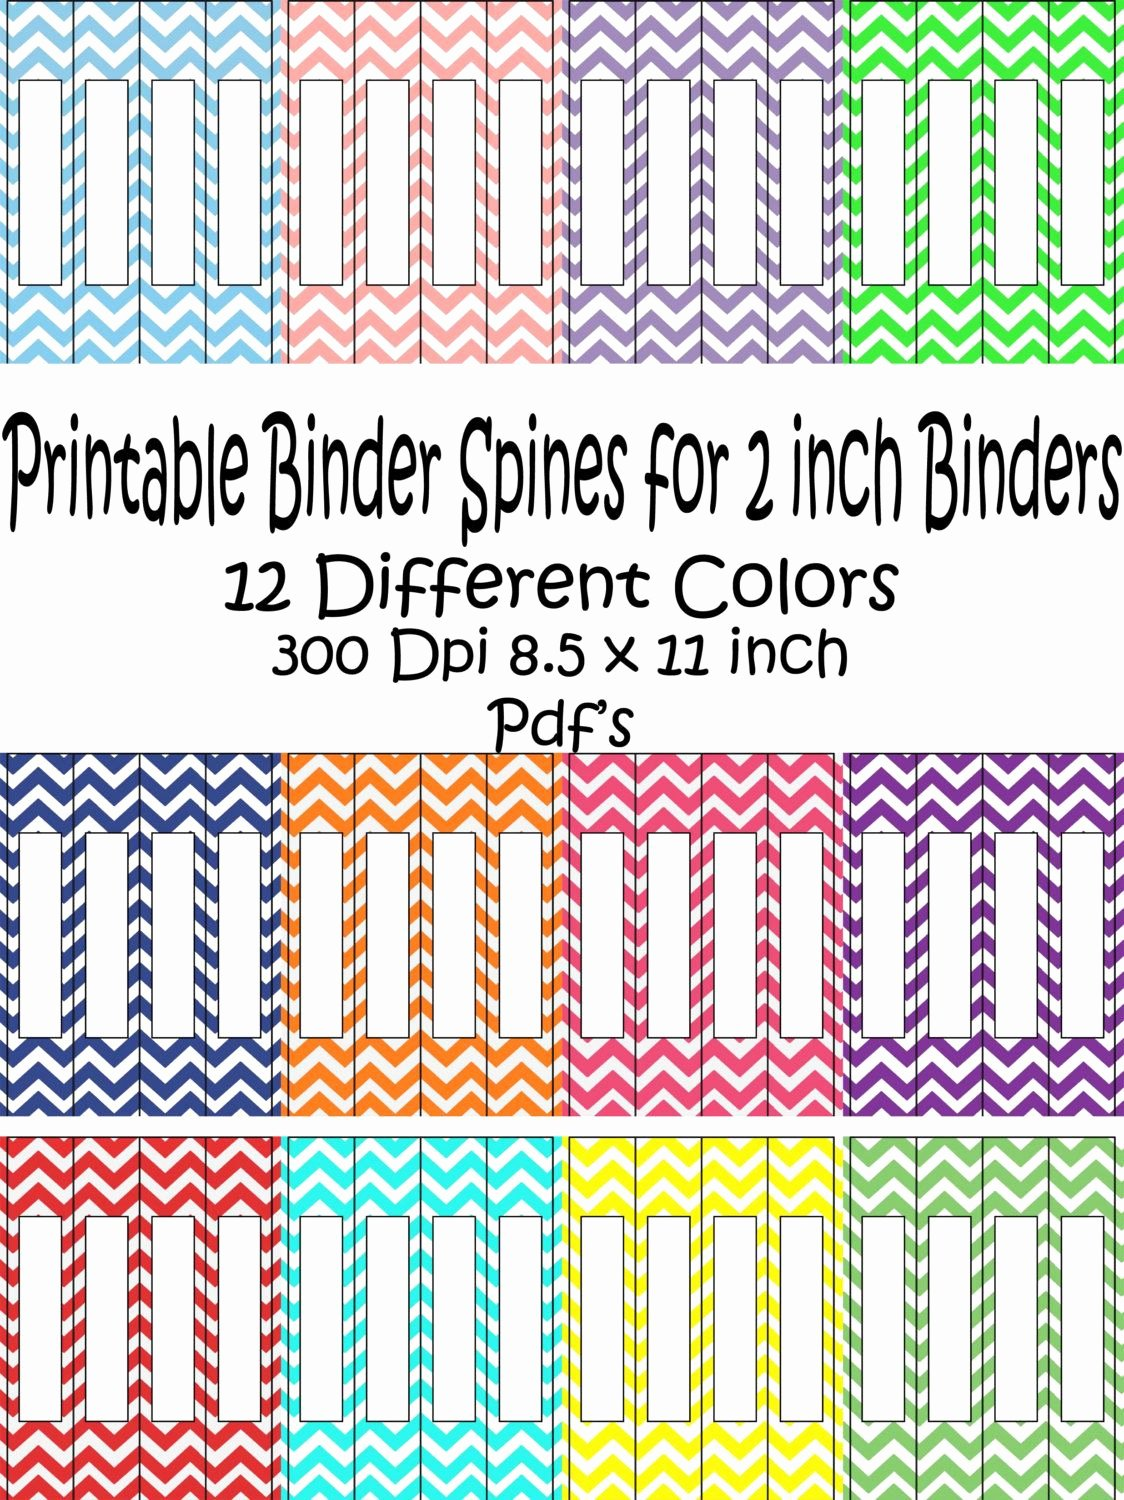 2 Inch Binder Spine Template Inspirational Printable Binder Spine Pack Size 2 Inch 12 Different